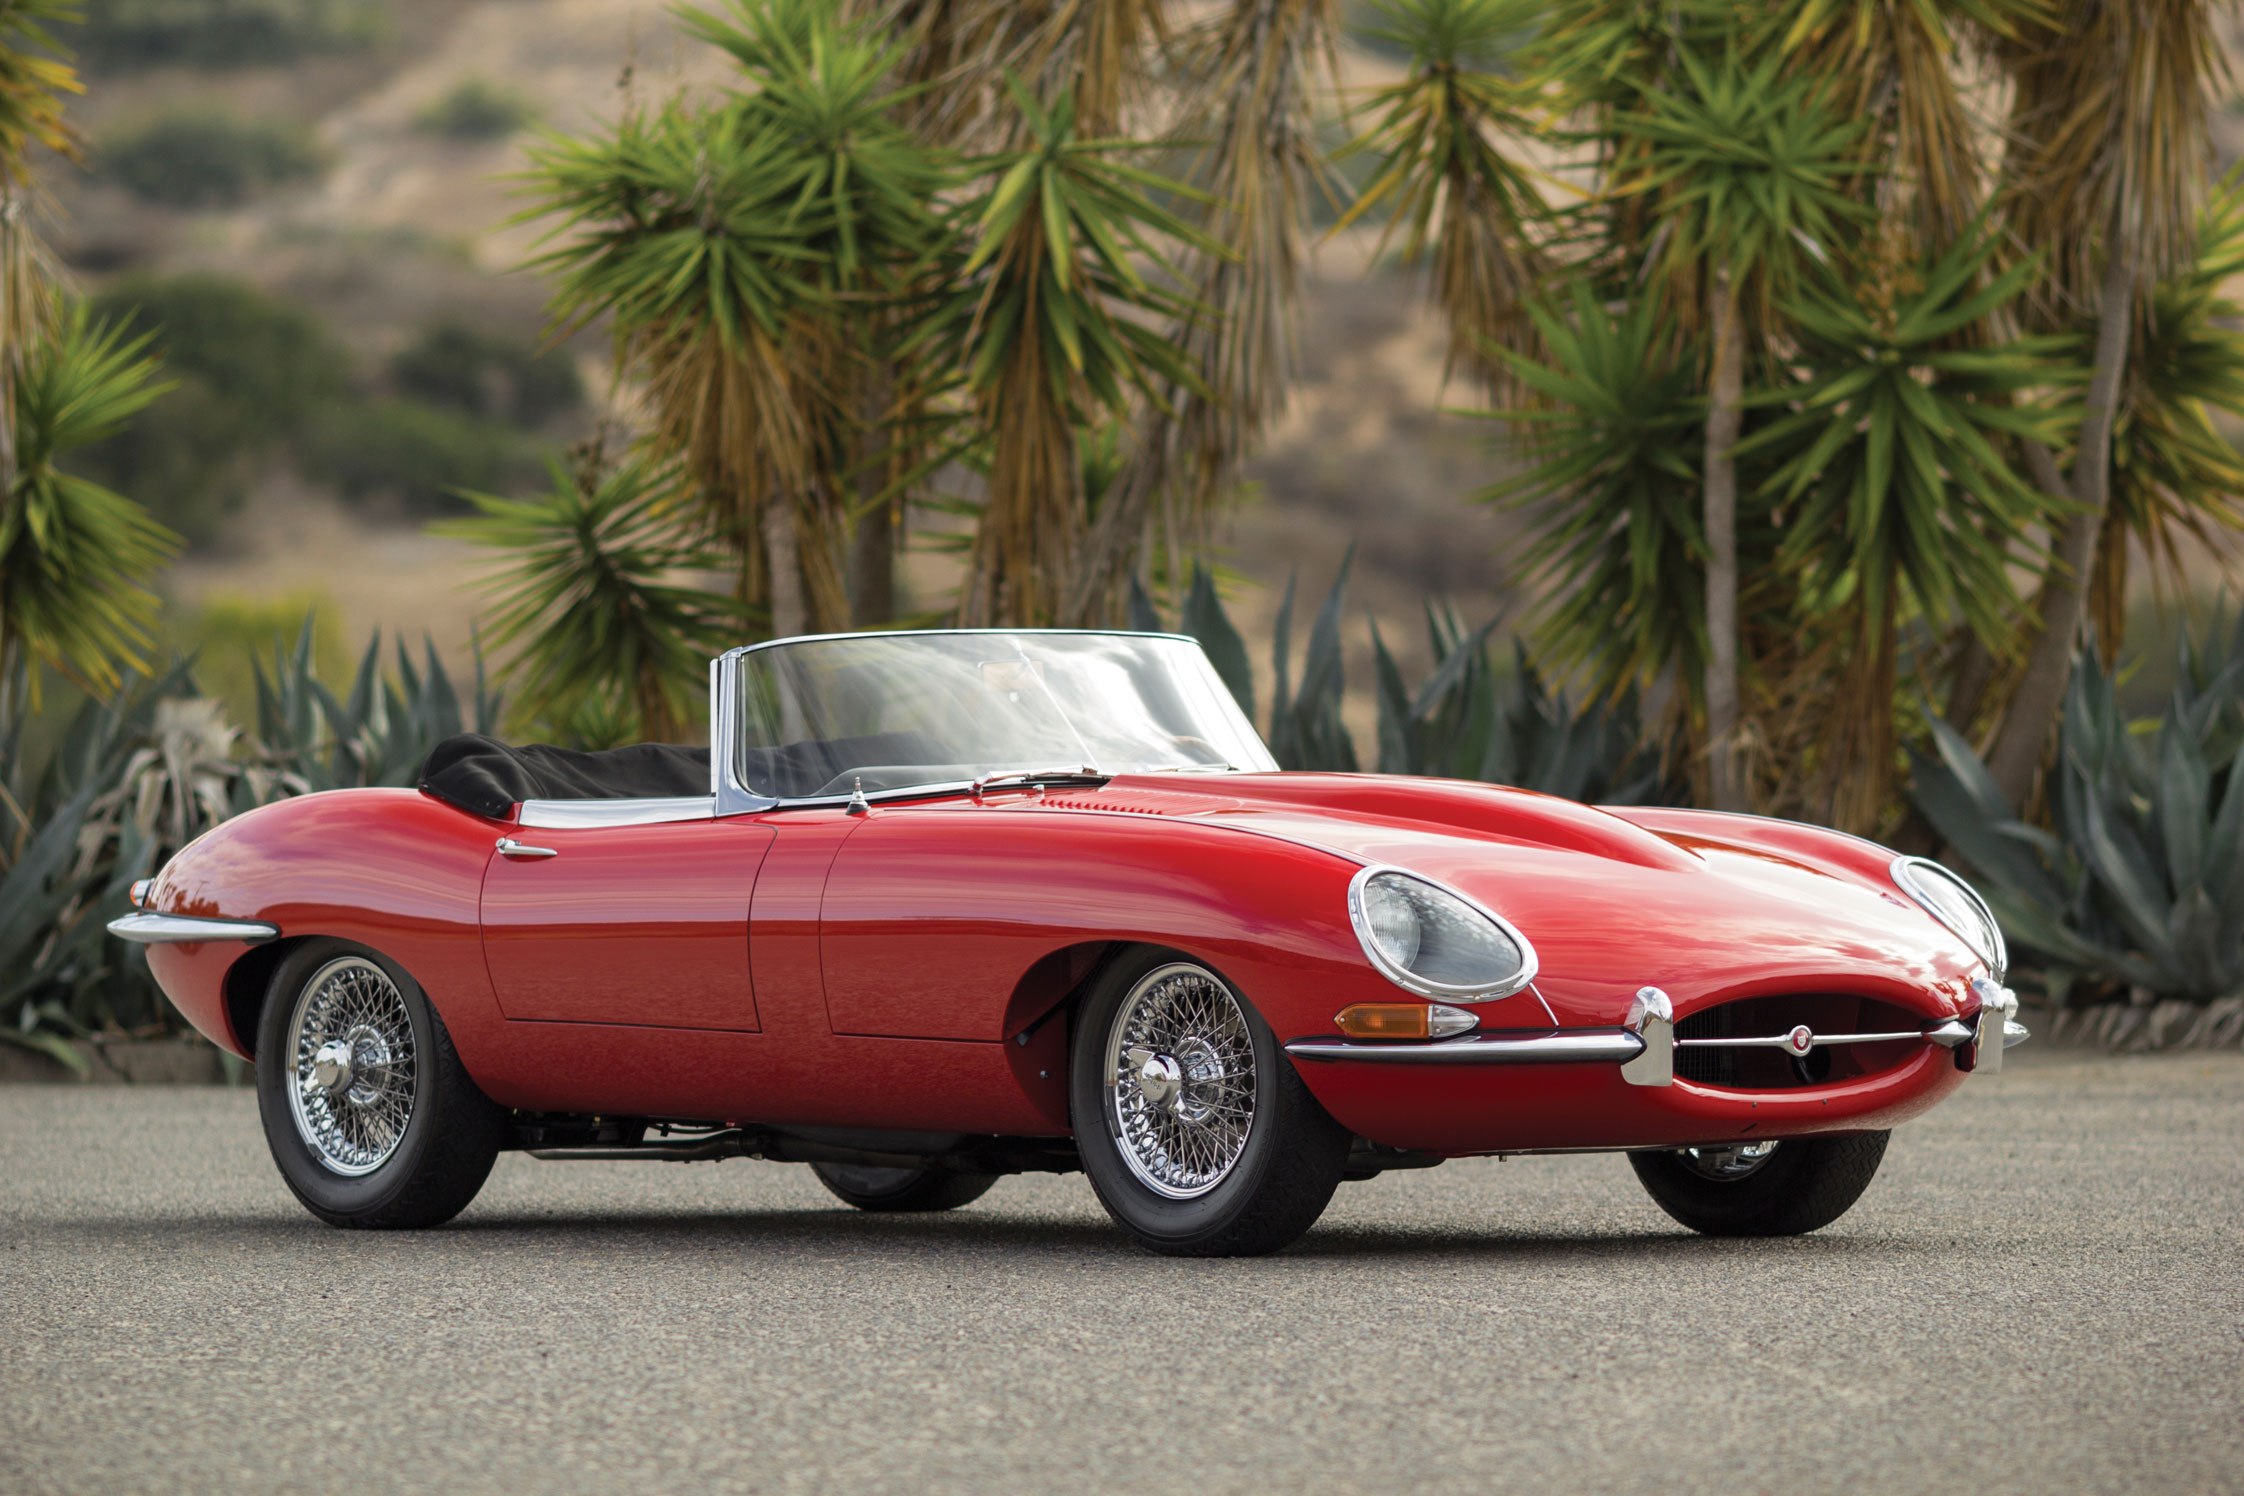 photo jaguar type e s rie 1 3 8l cabriolet 1962 m diatheque. Black Bedroom Furniture Sets. Home Design Ideas